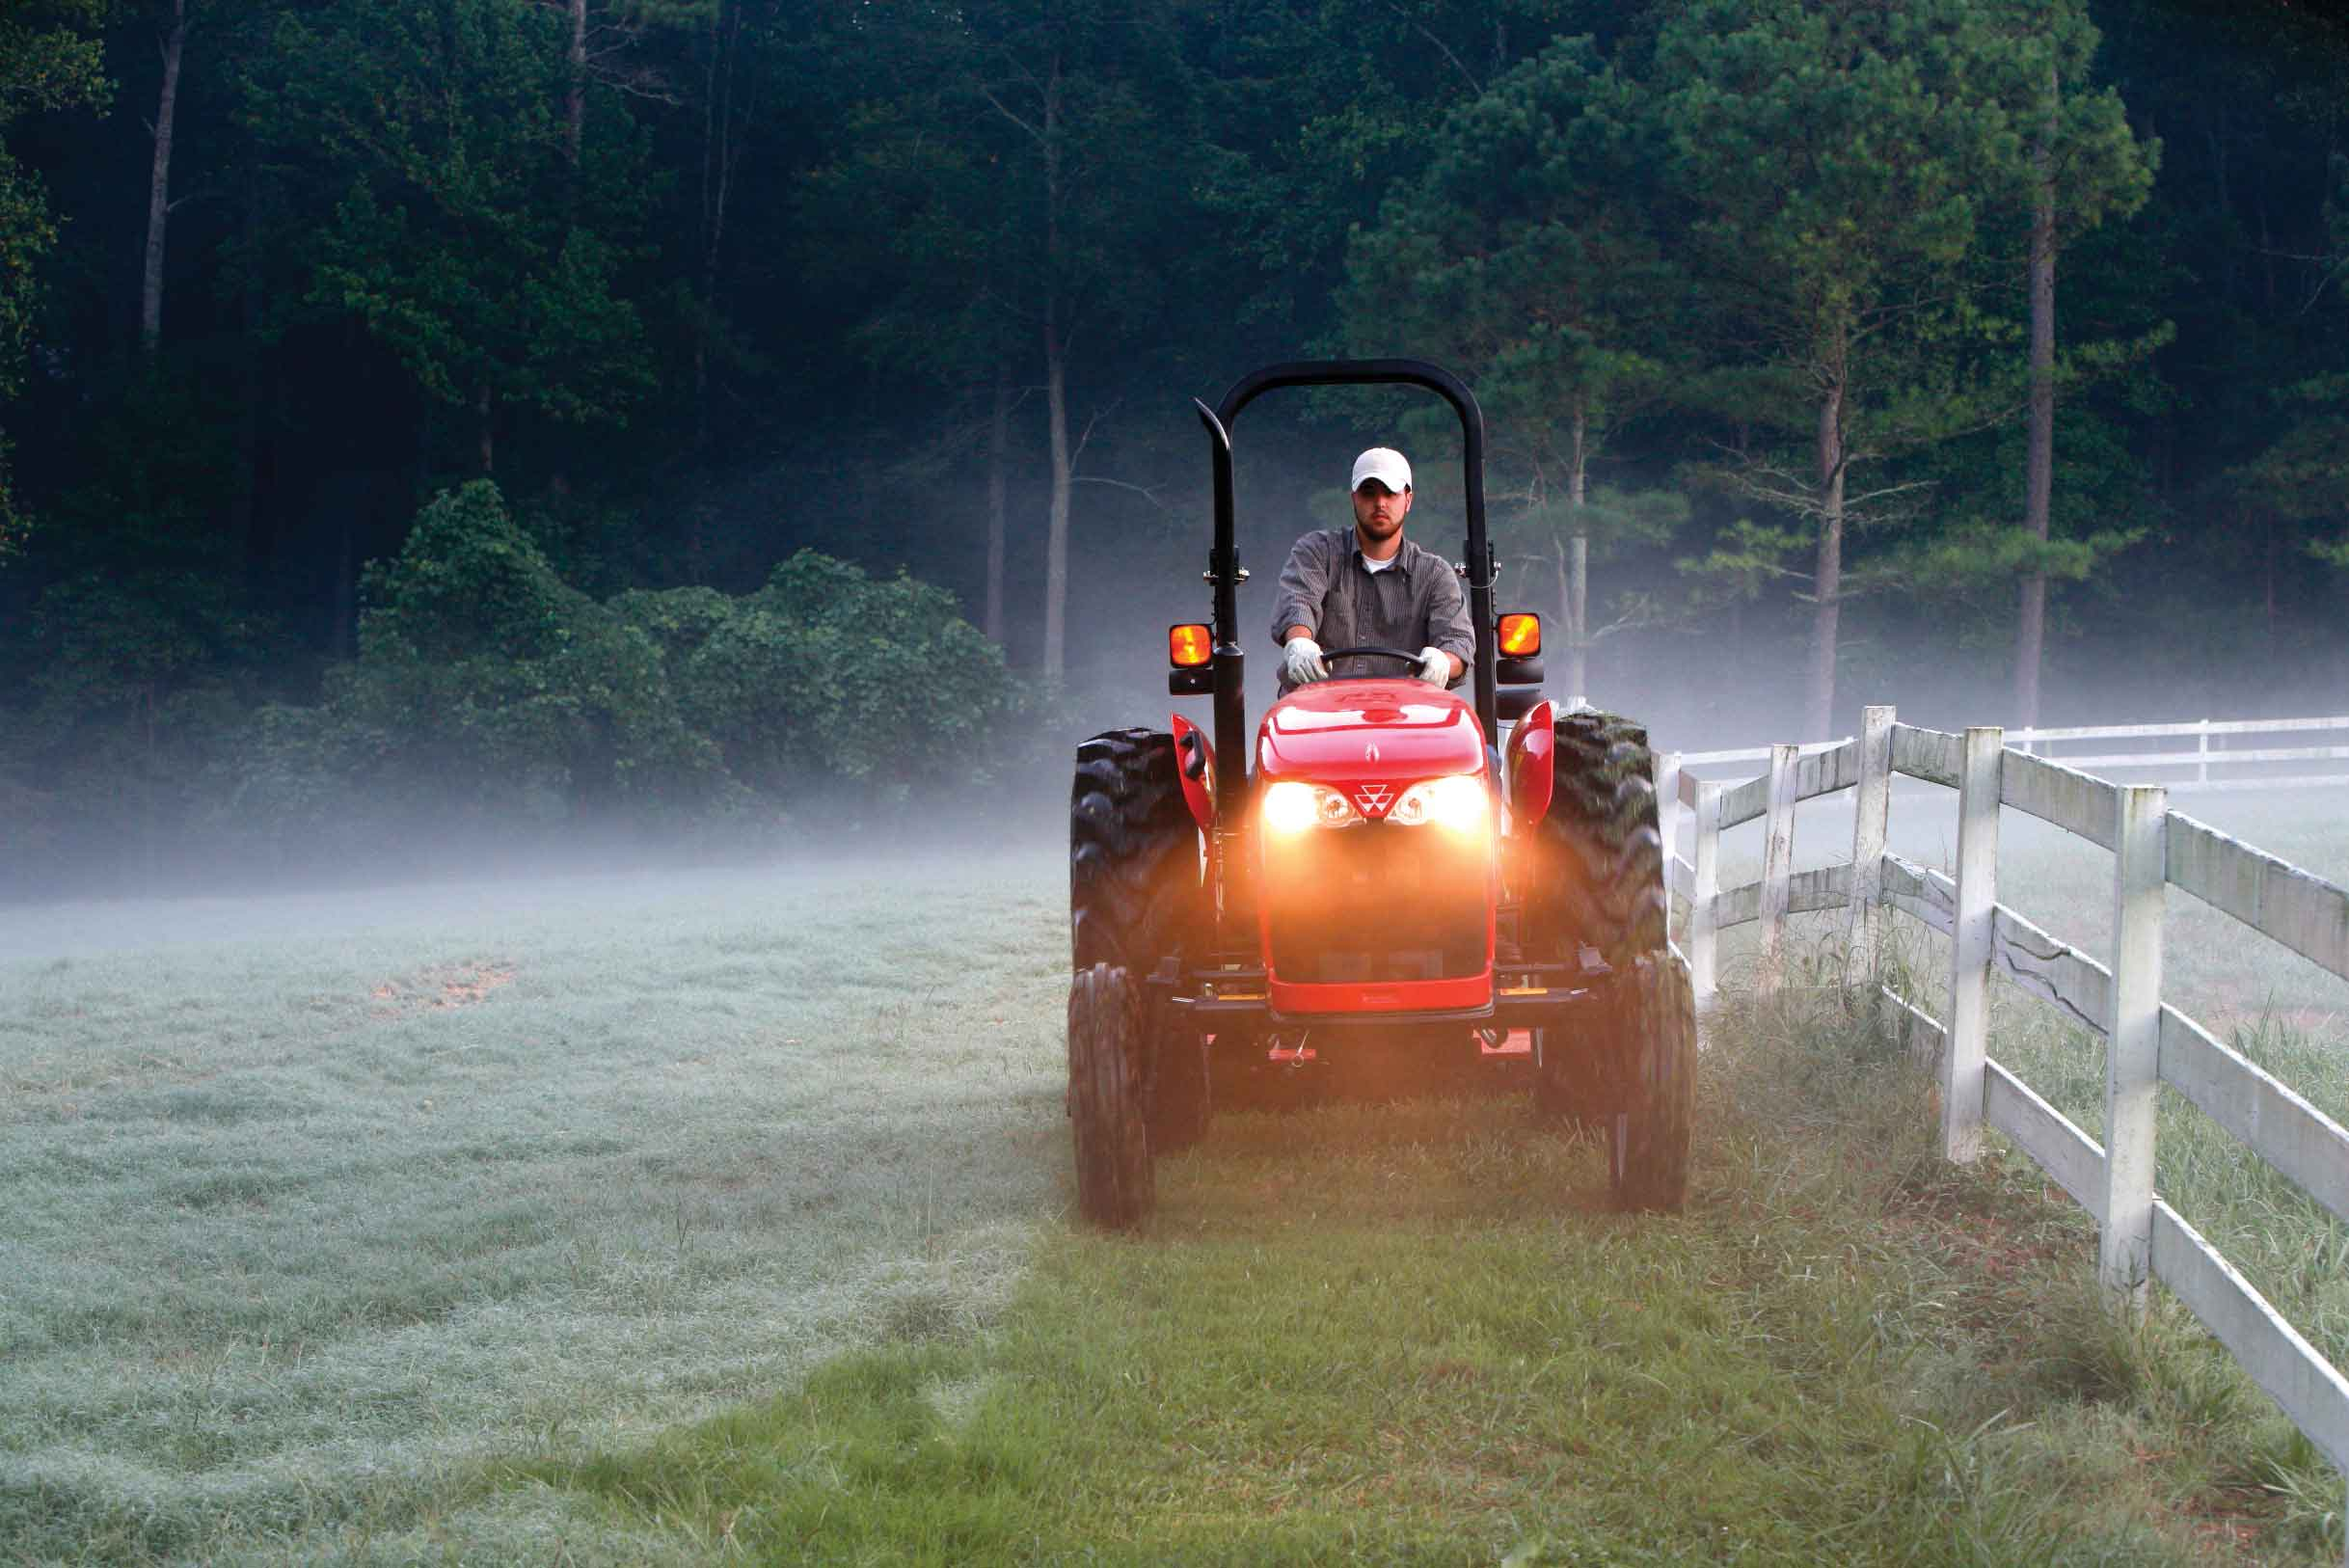 Driving a tractor through the morning fog